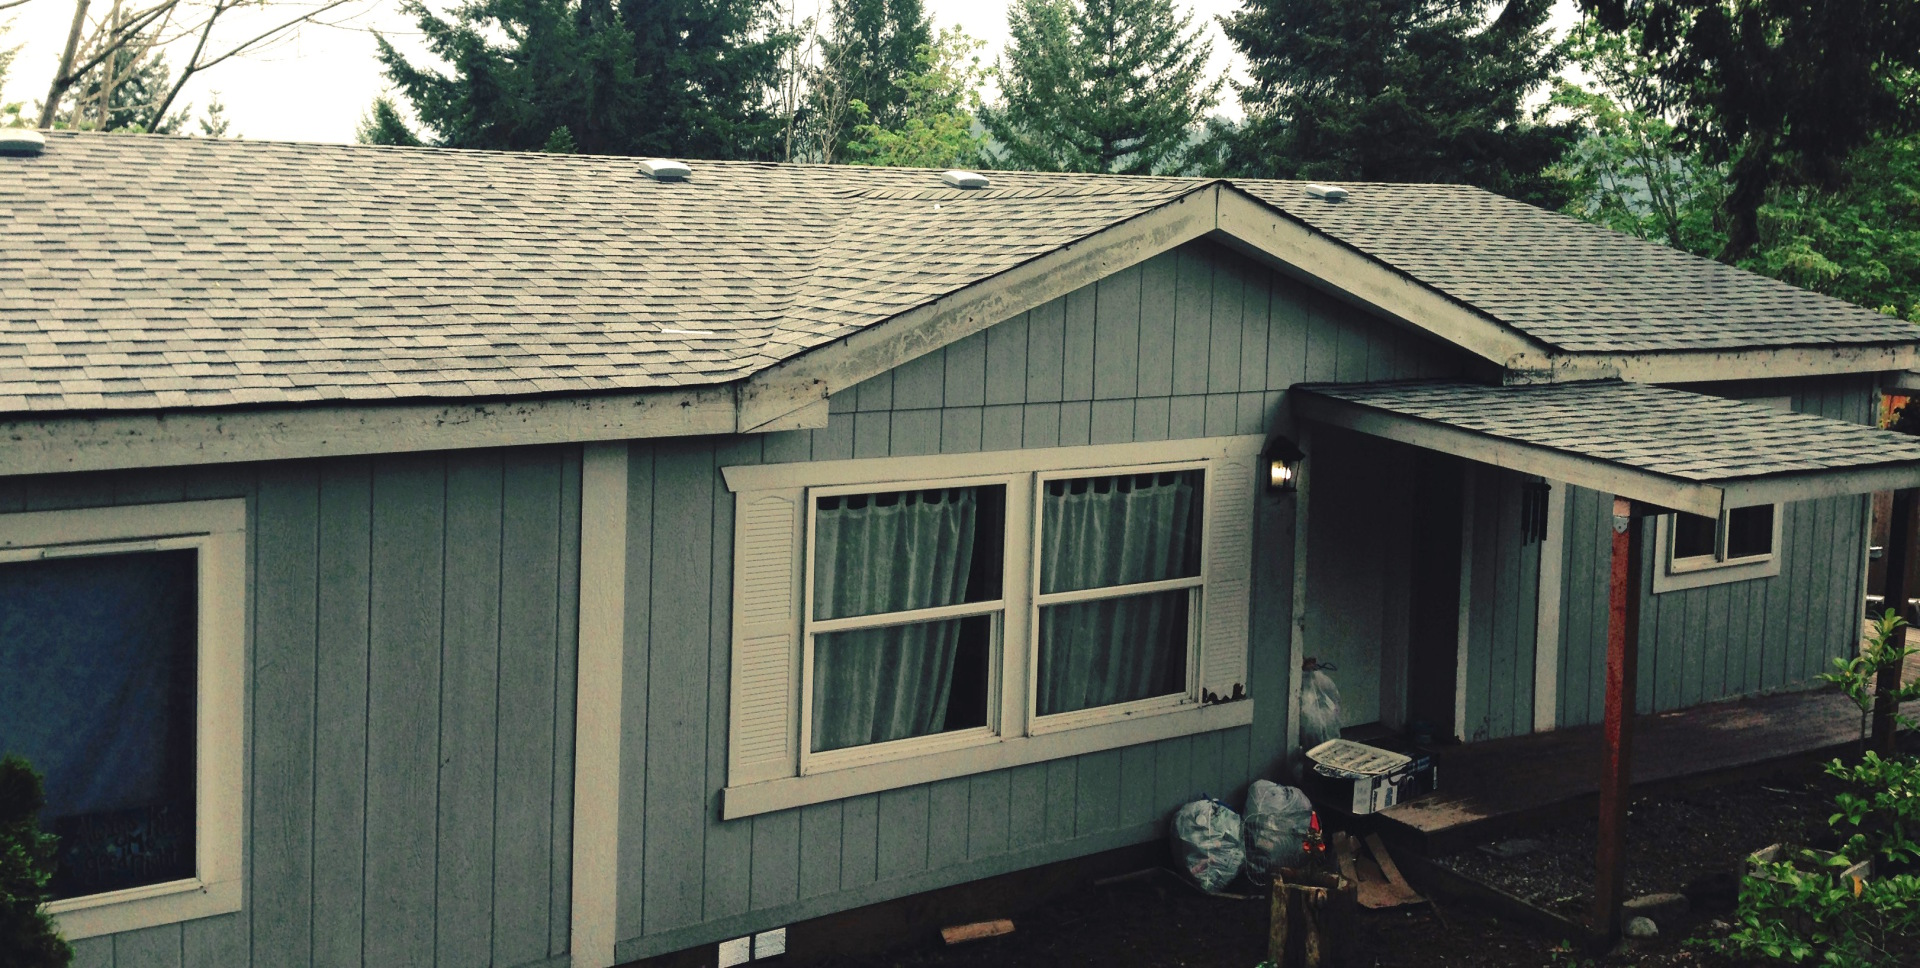 Residential Roofing Contractor Serving Bonney Lake, WA